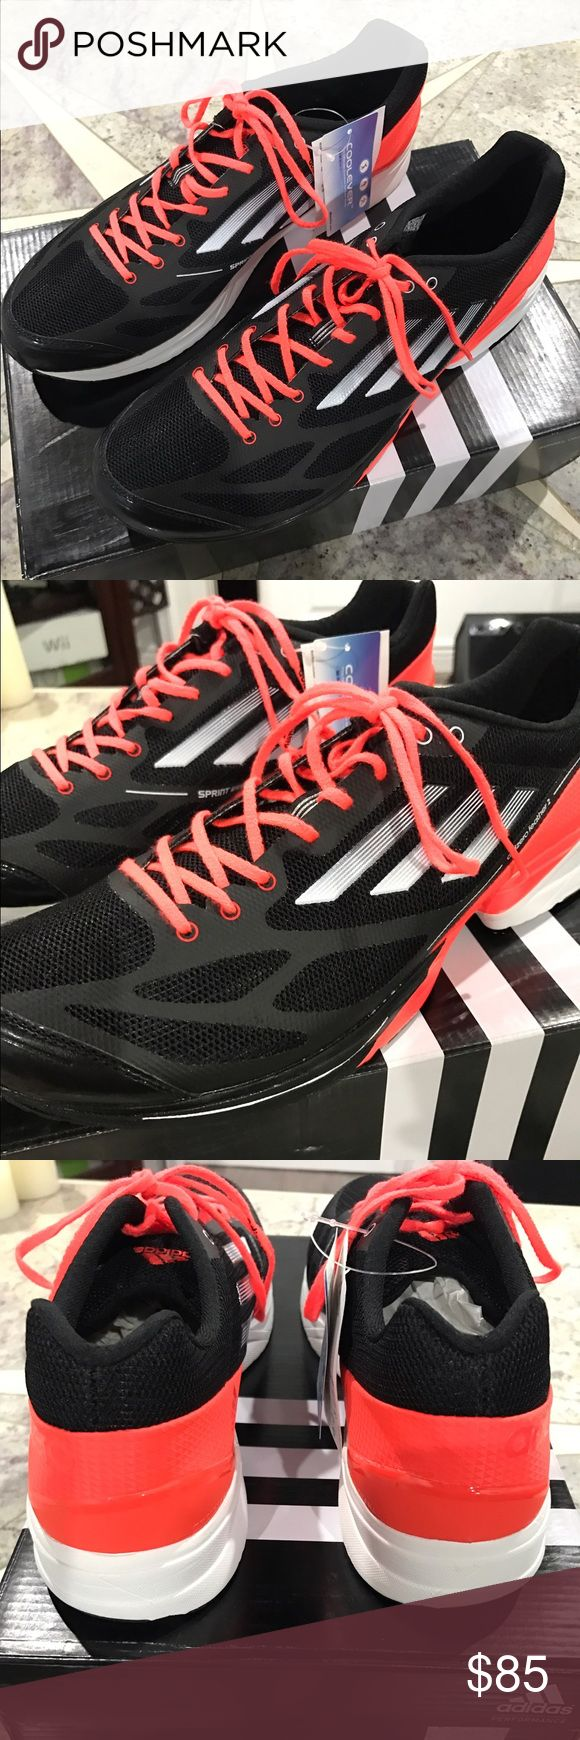 Brand New!!!! Men's Adidas Adizero Feather 2 Brand New!!!! Men's Adidas Adizero Feather 2. Running shoes with Coolever comfort Adidas Shoes Athletic Shoes